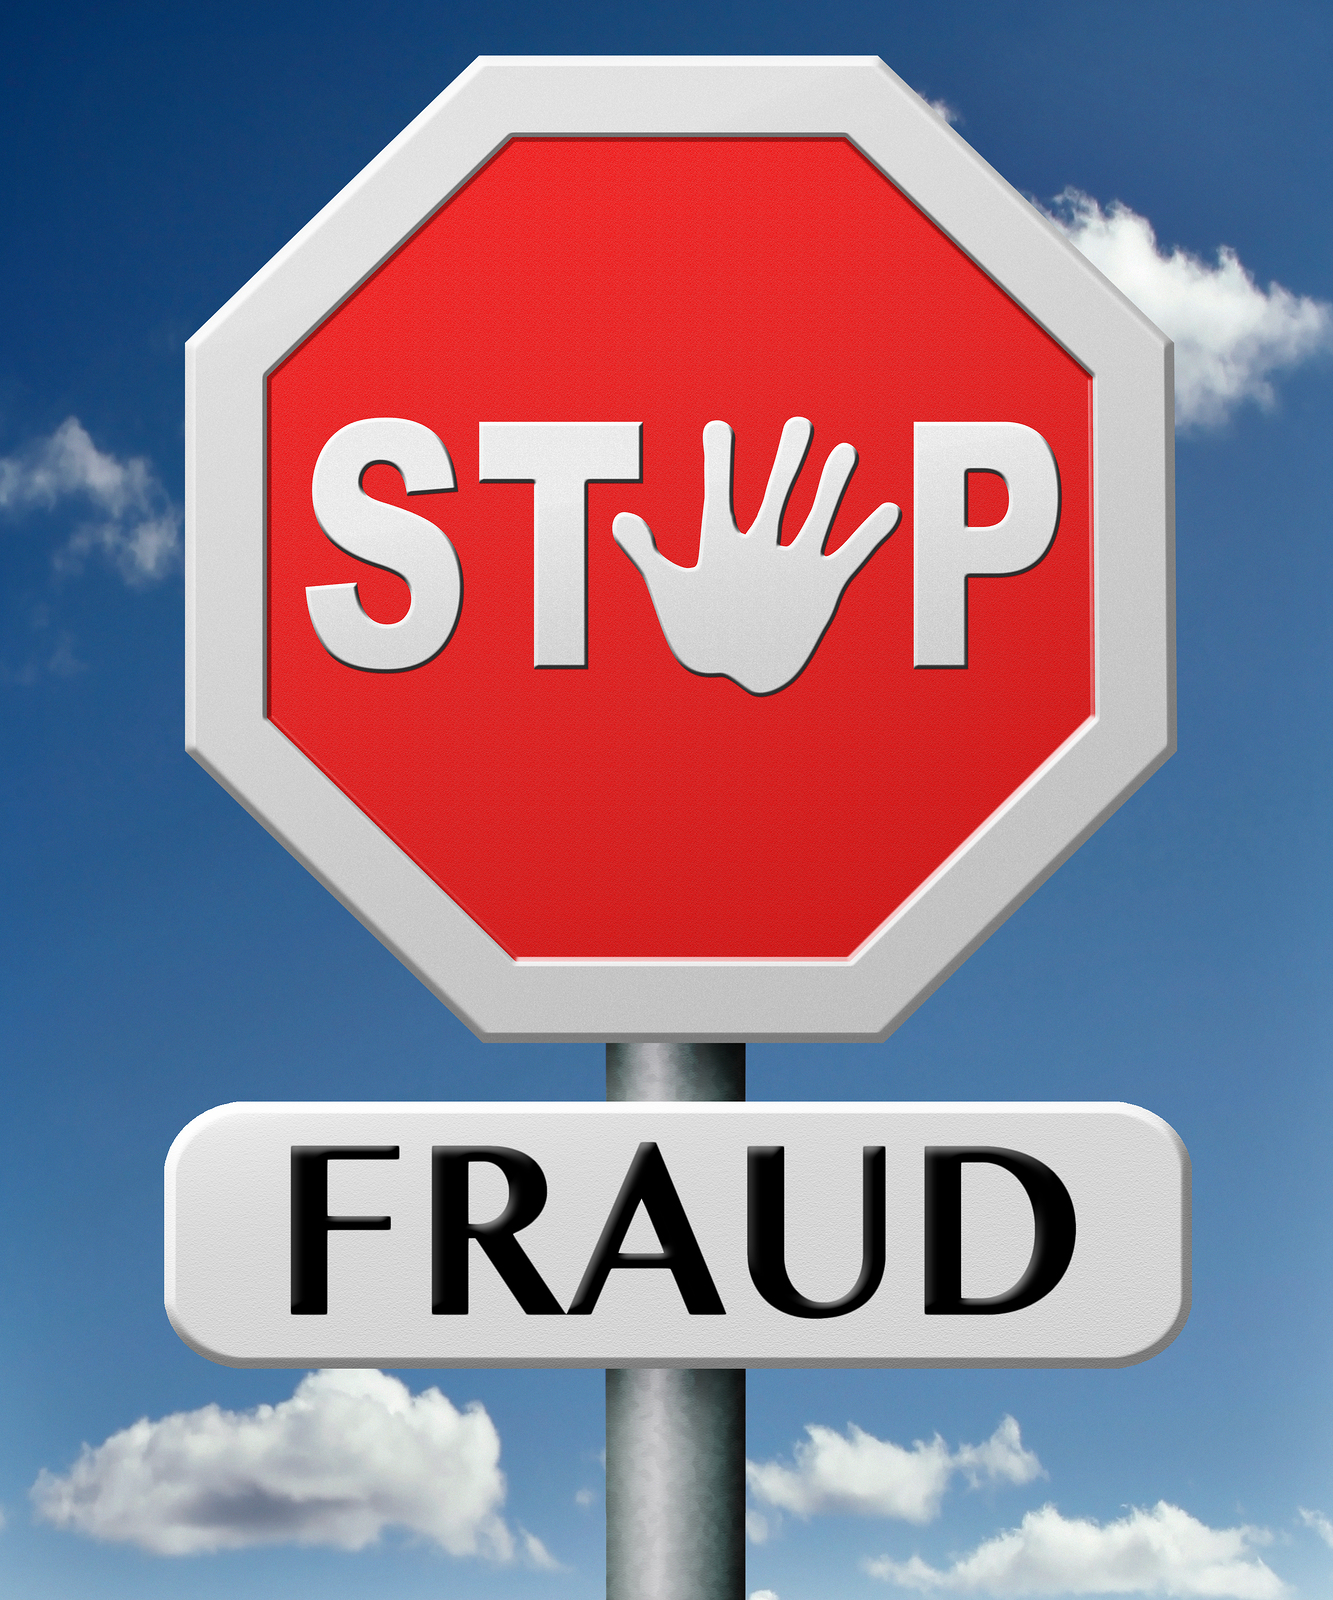 stop-fraud-bride-and-political-41516575.jpg?w=411&h=494